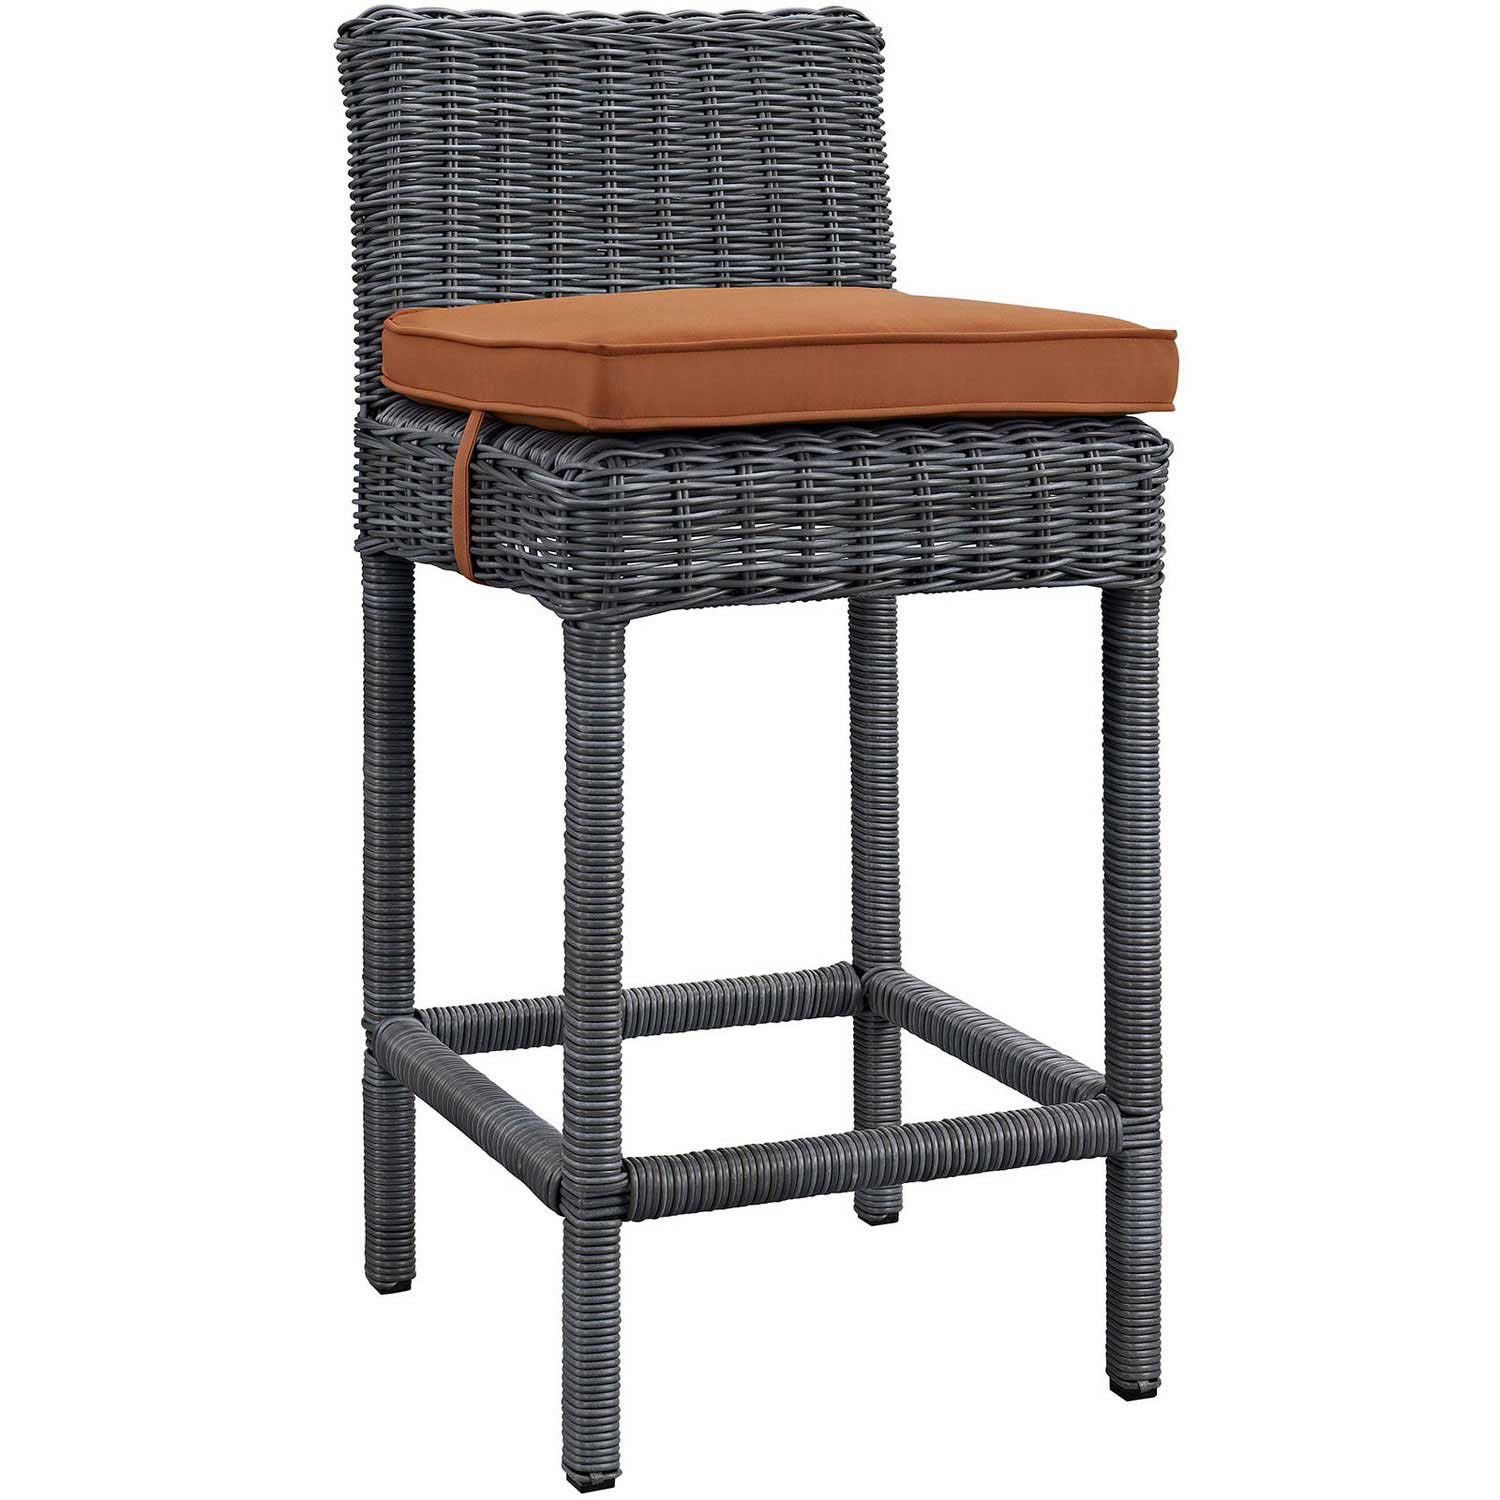 Modway Summon Outdoor Patio Sunbrella Bar Stool - Canvas Tuscan